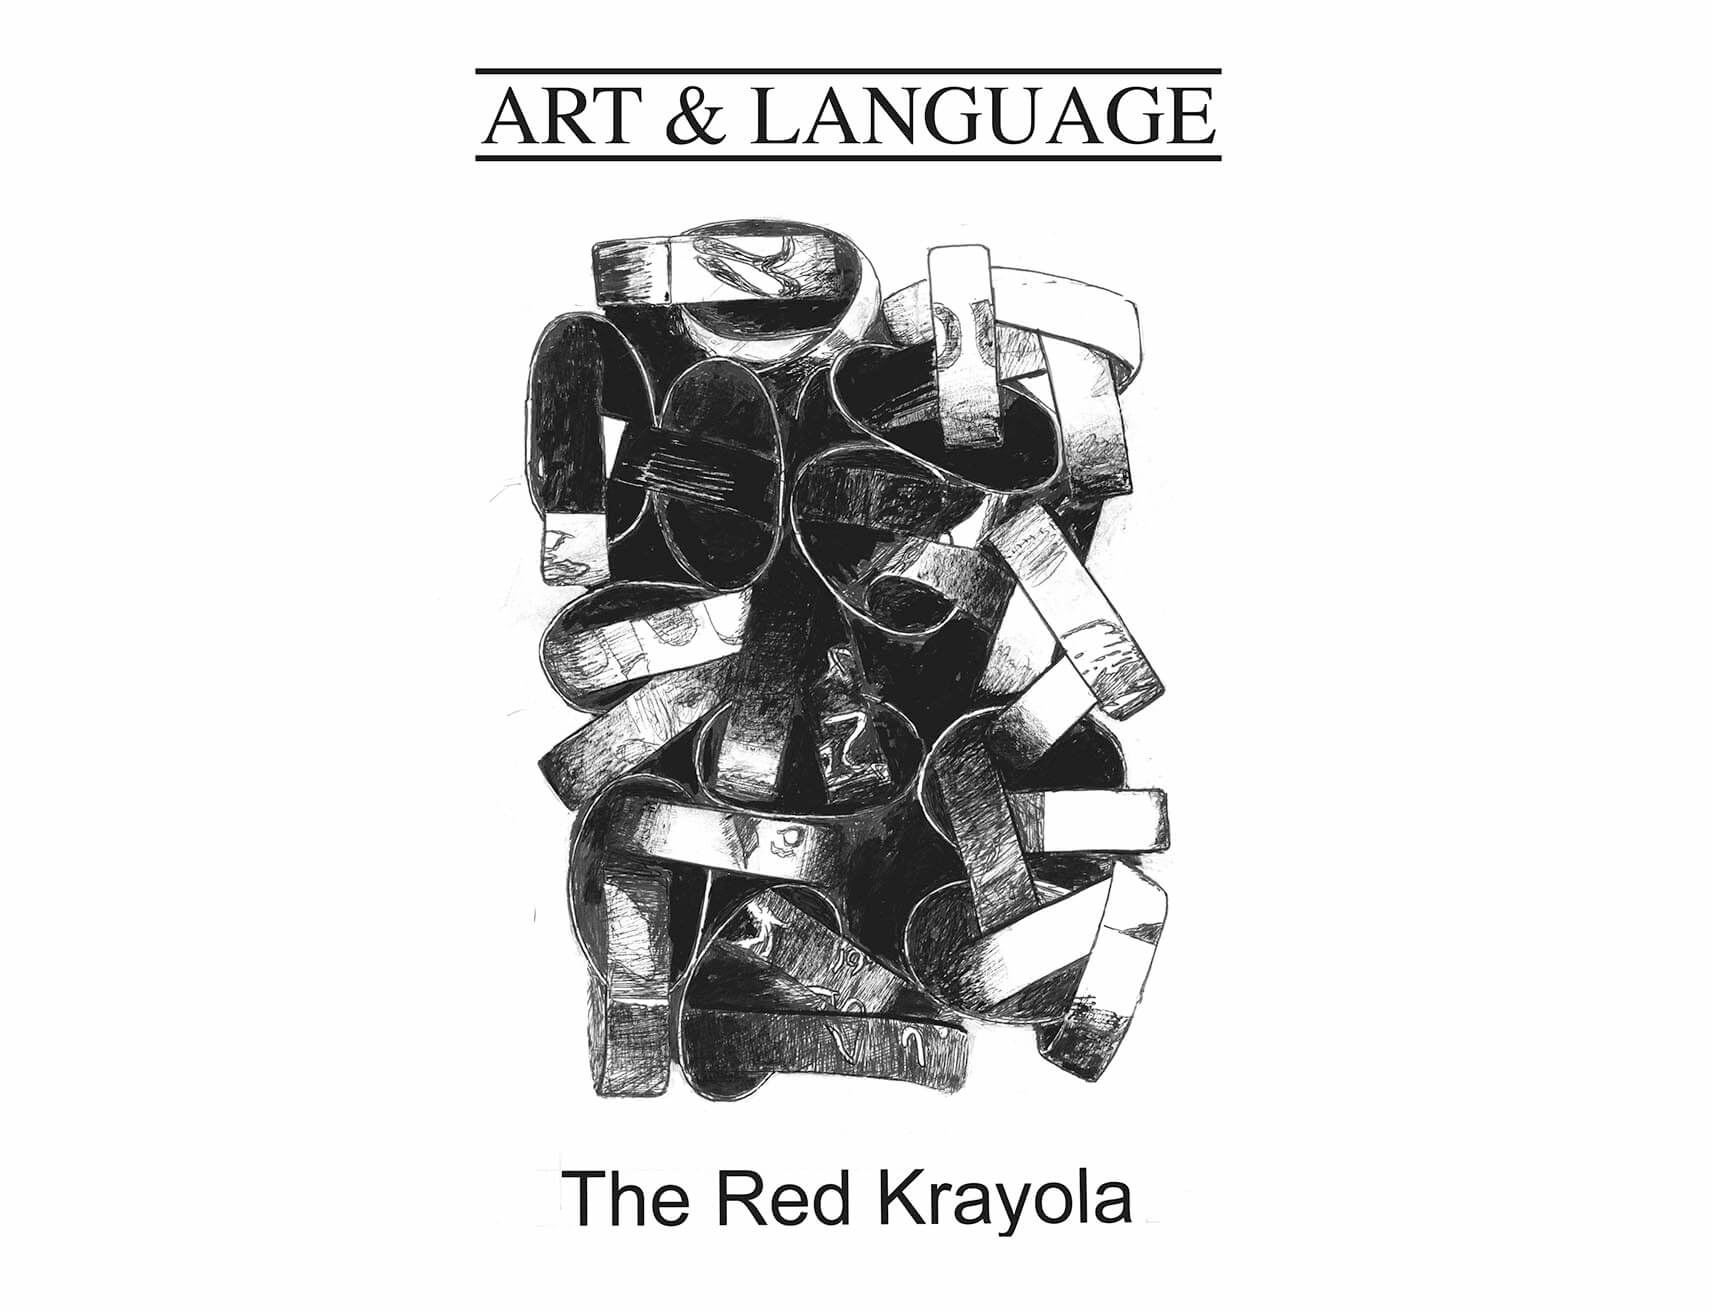 Art & Language: Letters to The Jackson Pollock Bar in the Style of The Red Krayola